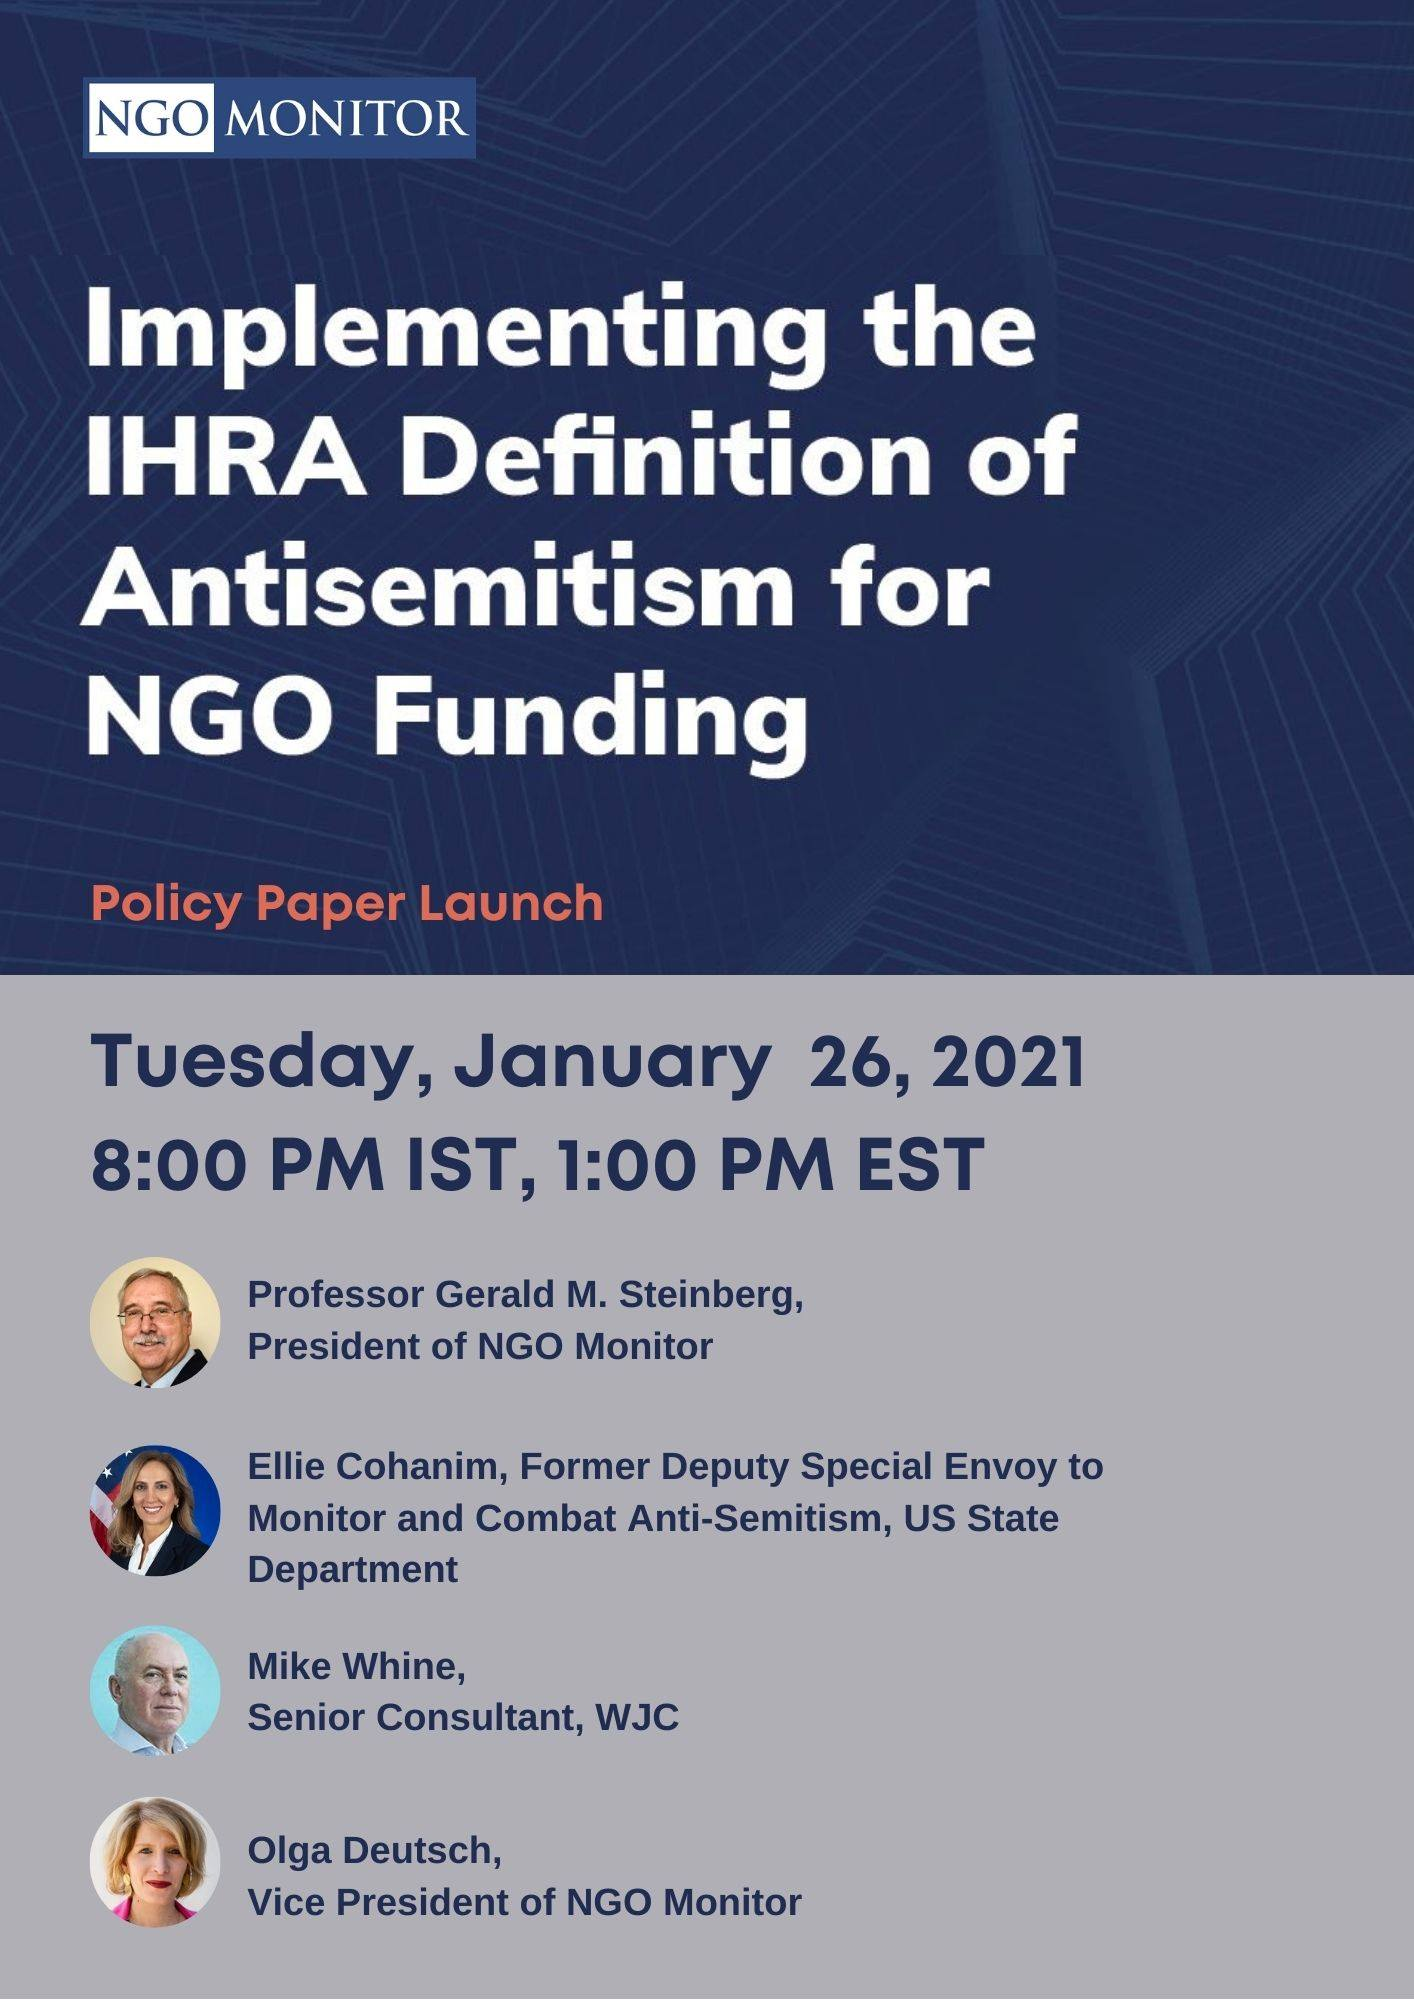 Implementing the IHRA Definition of Antisemitism for NGO Funding